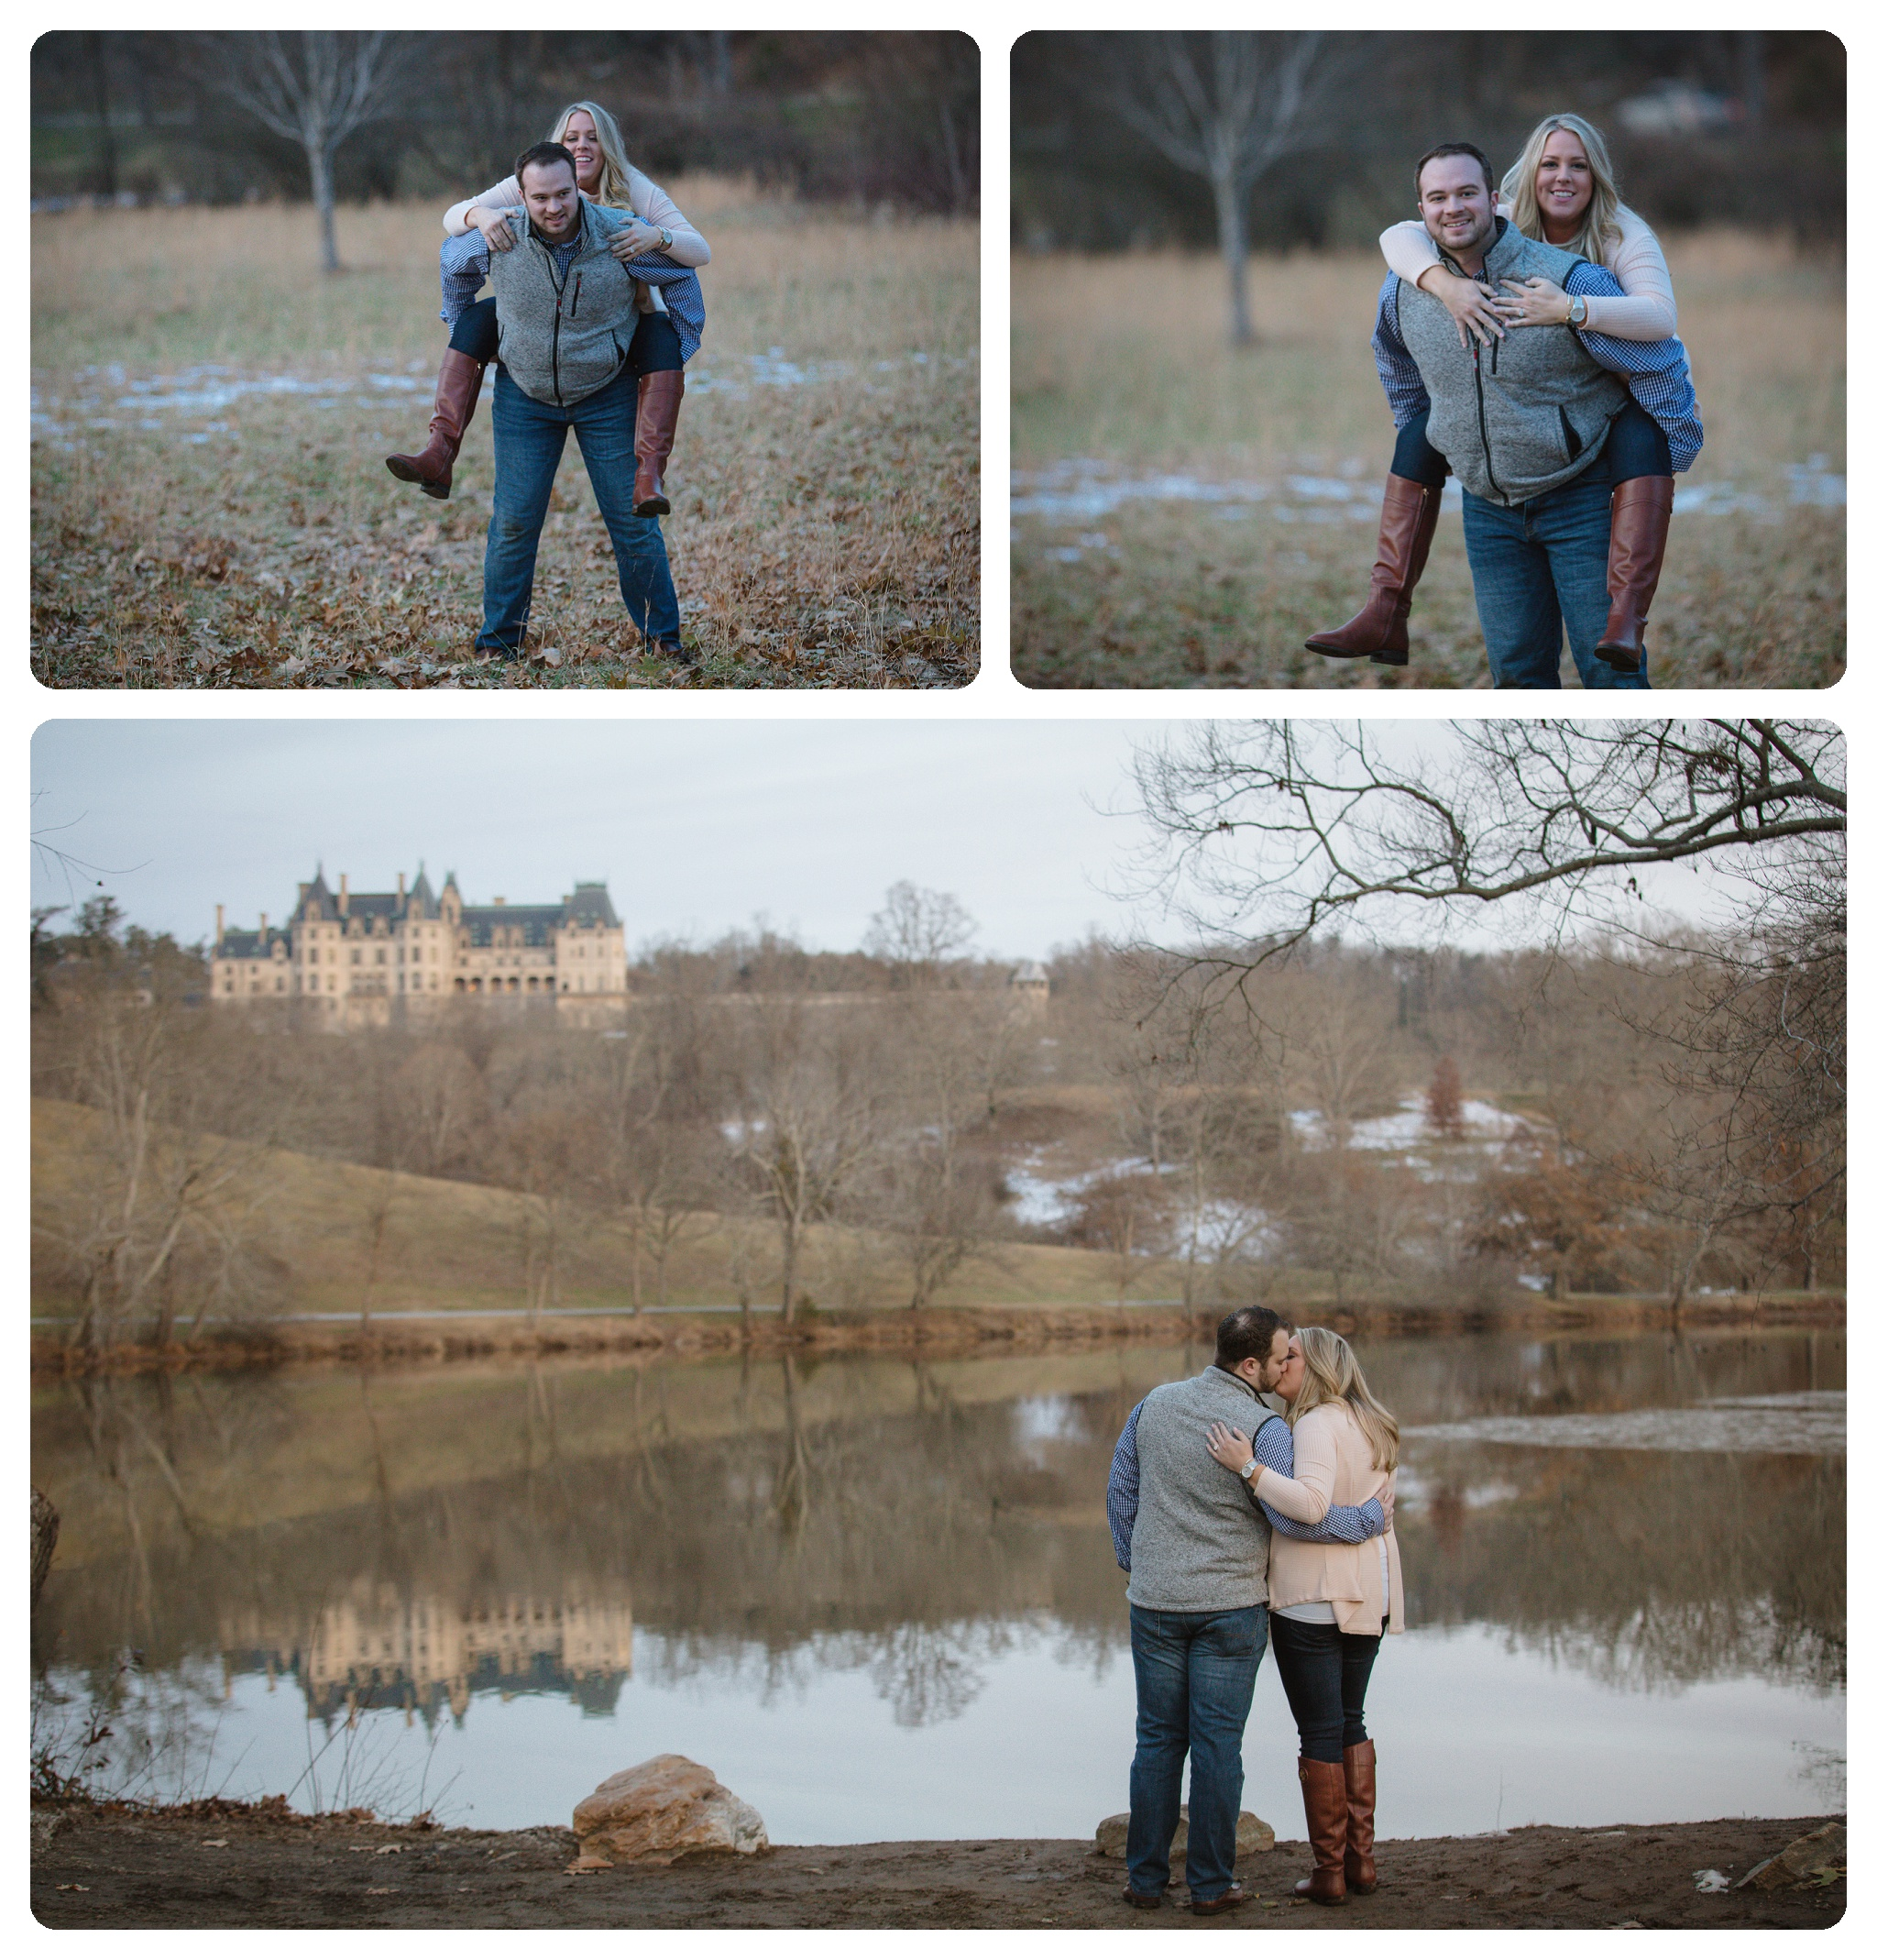 Jacob engagement shoots at the Lagoon on Biltmore Estate